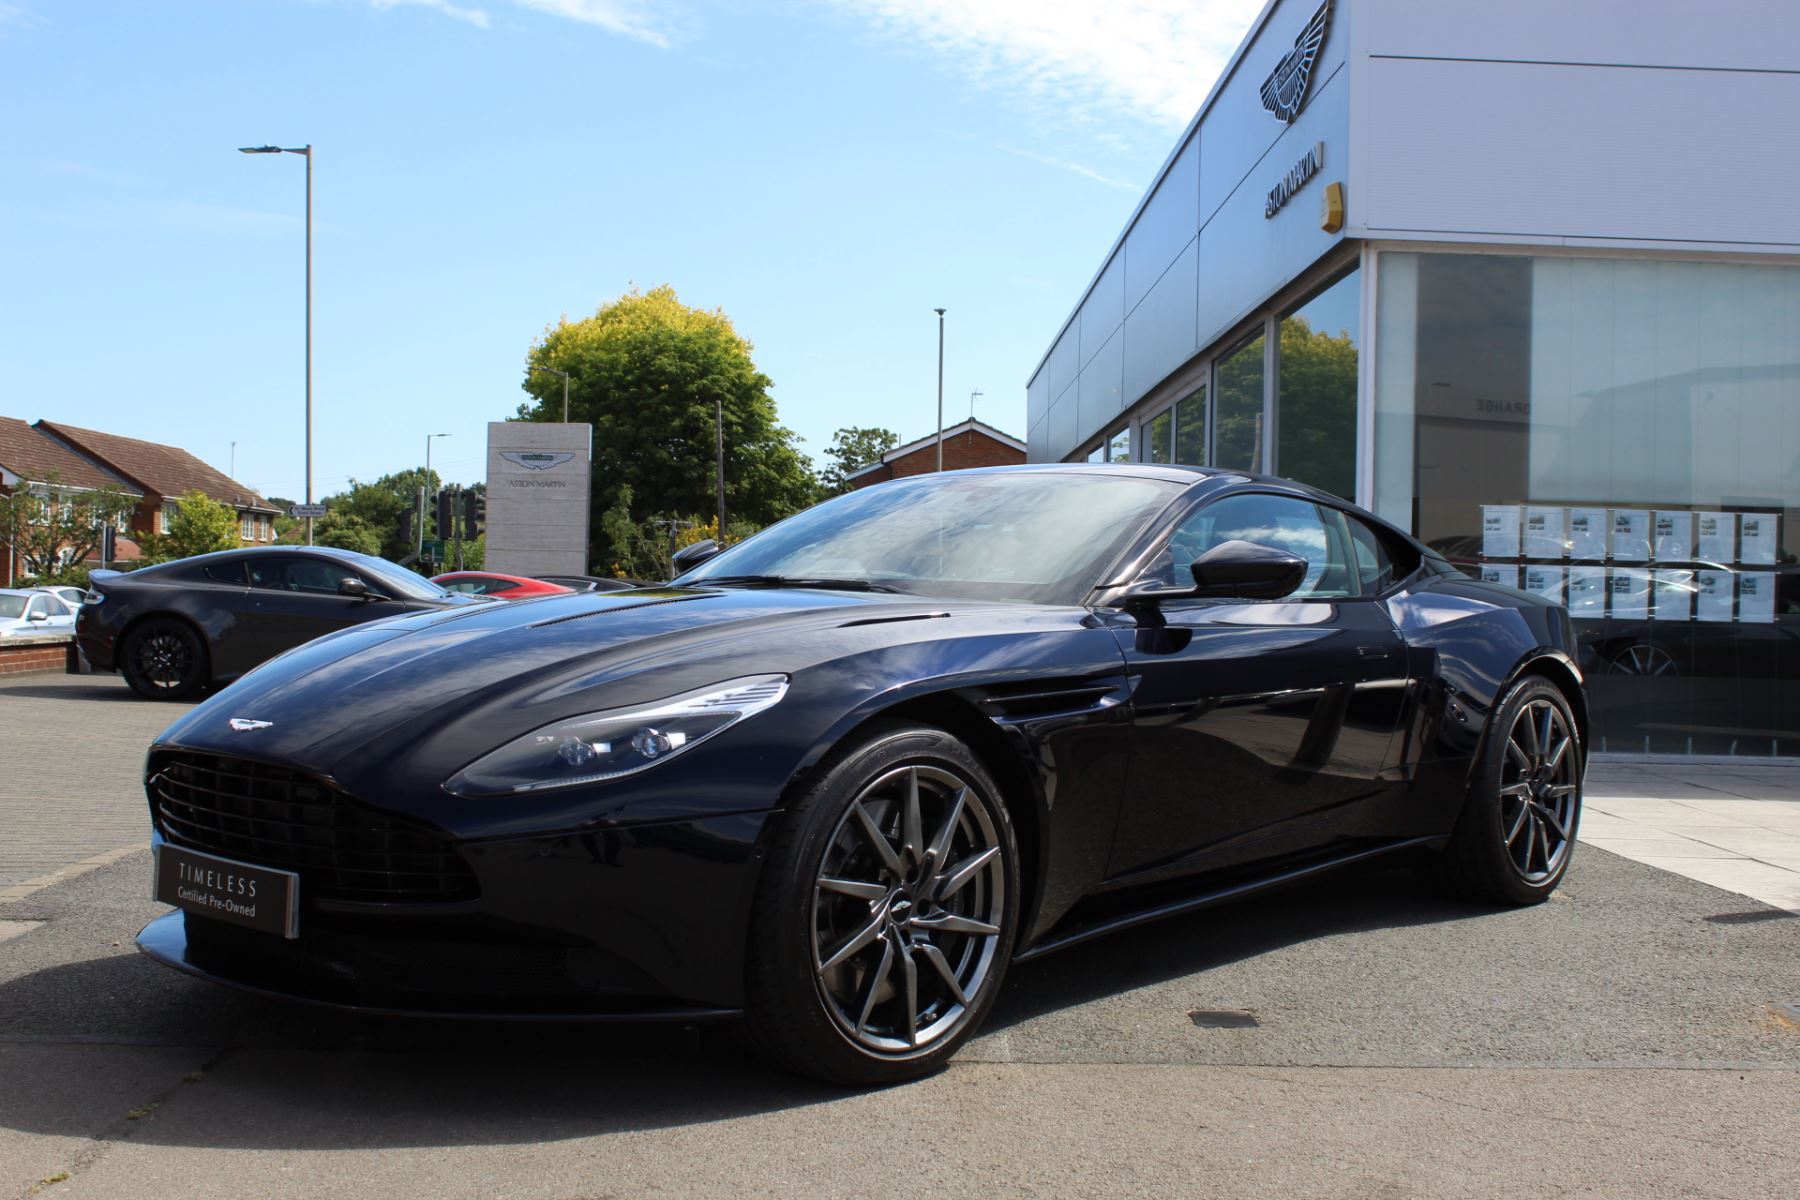 Aston Martin DB11 V12 2dr Touchtronic image 3